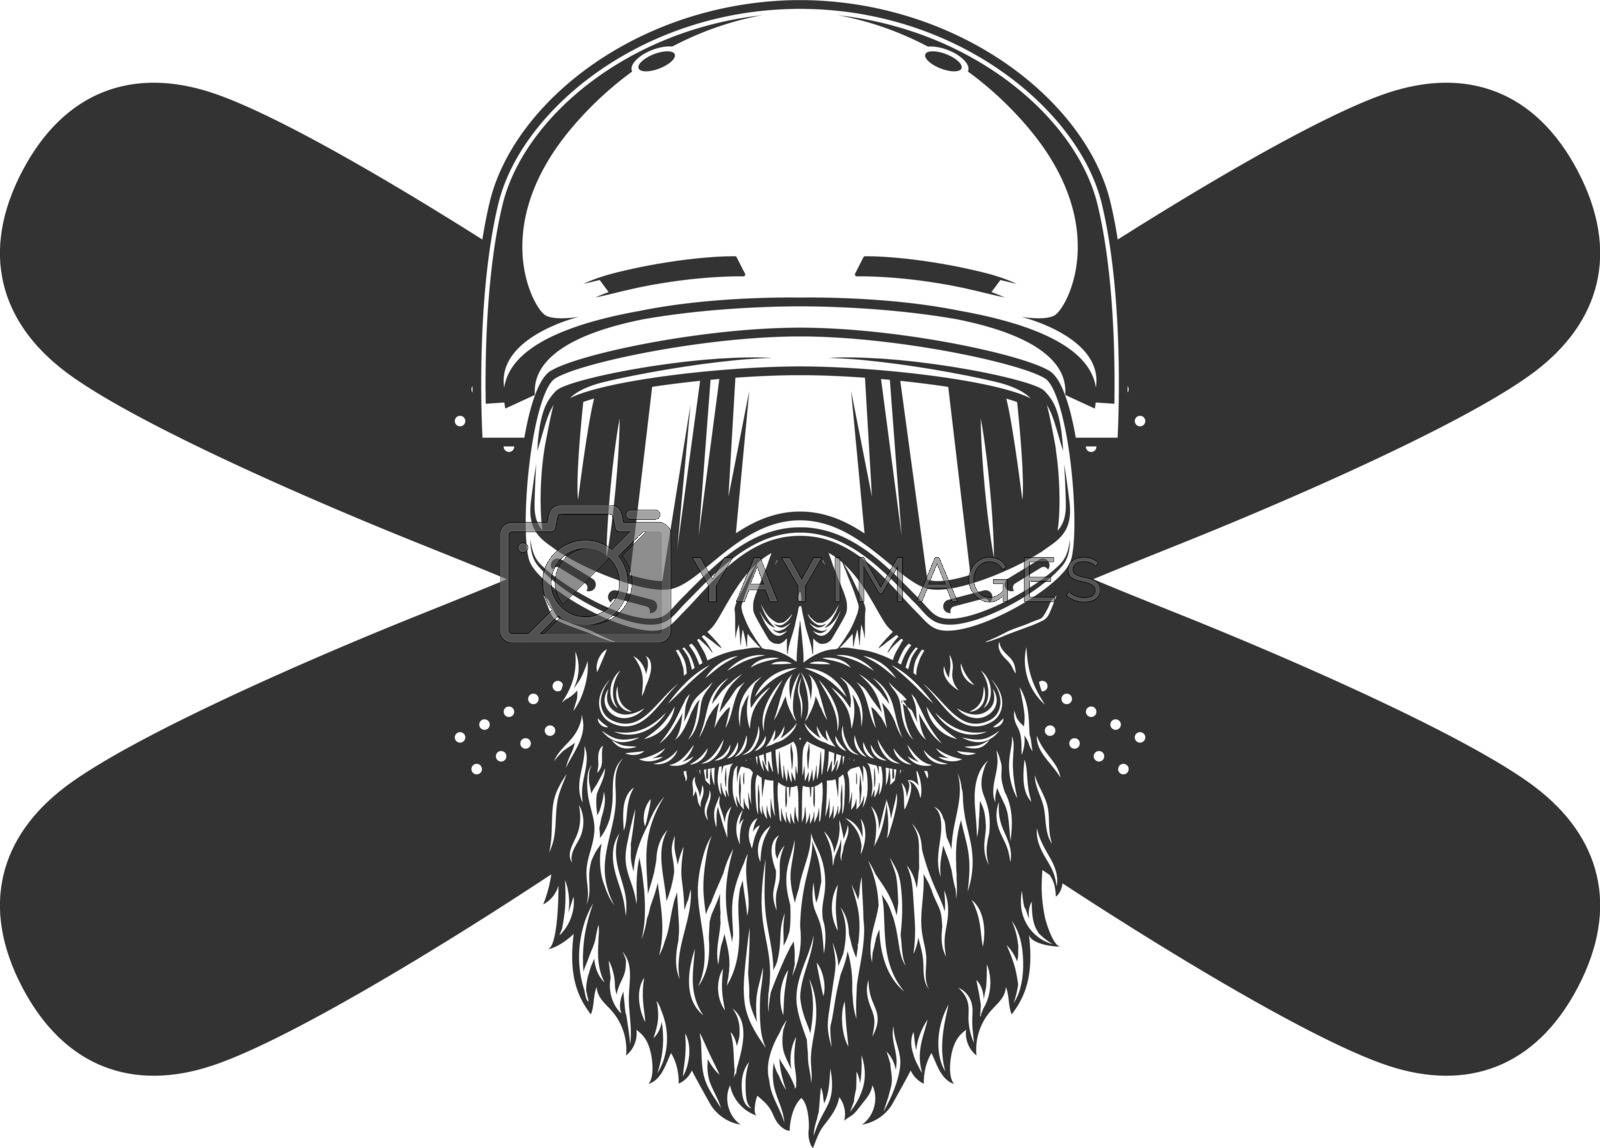 Vintage bearded and mustached snowboarder skull in helmet mask and crossed snowboards isolated vector illustration